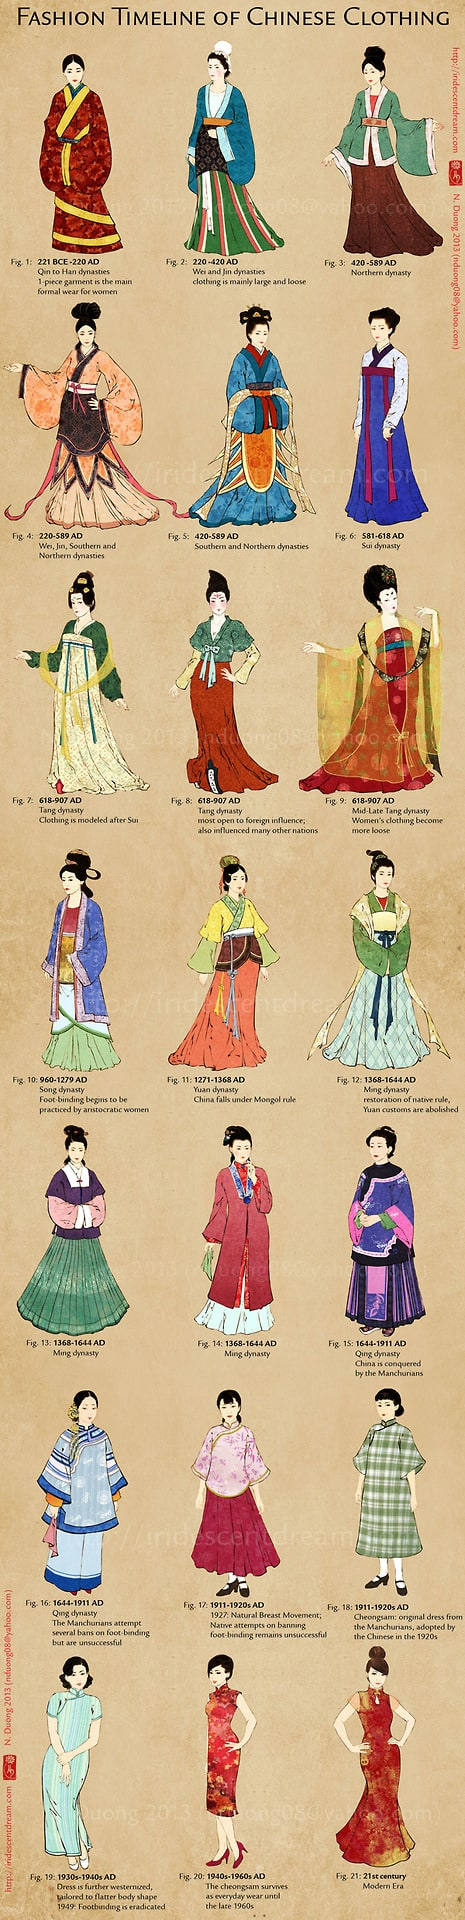 full chinese fashion timeline